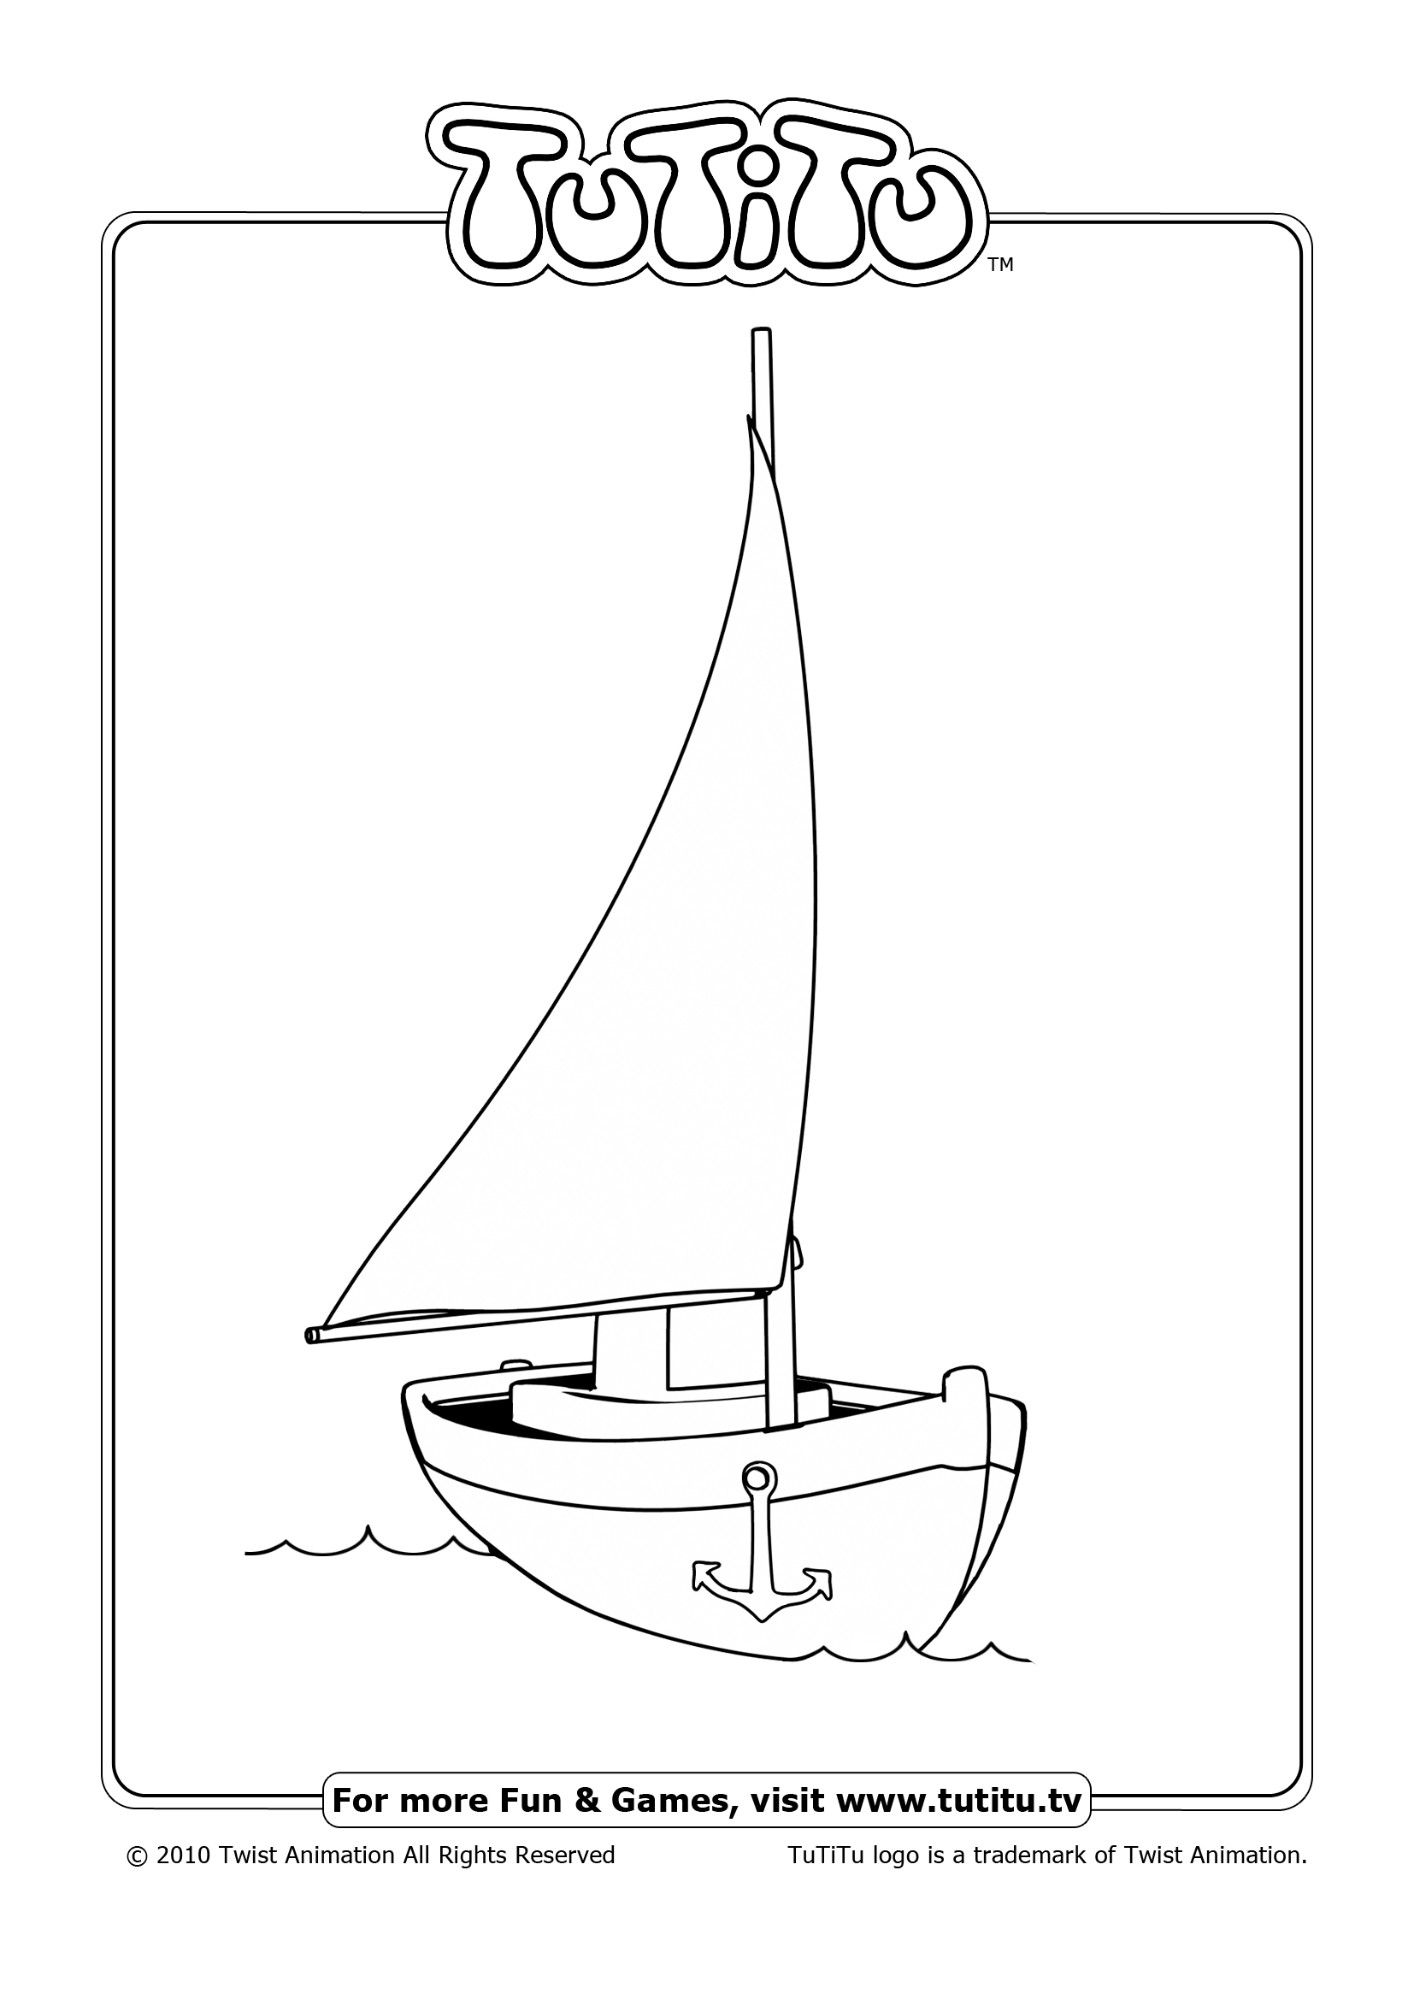 Free coloring pages for kids, Via TuTiTu\'s \